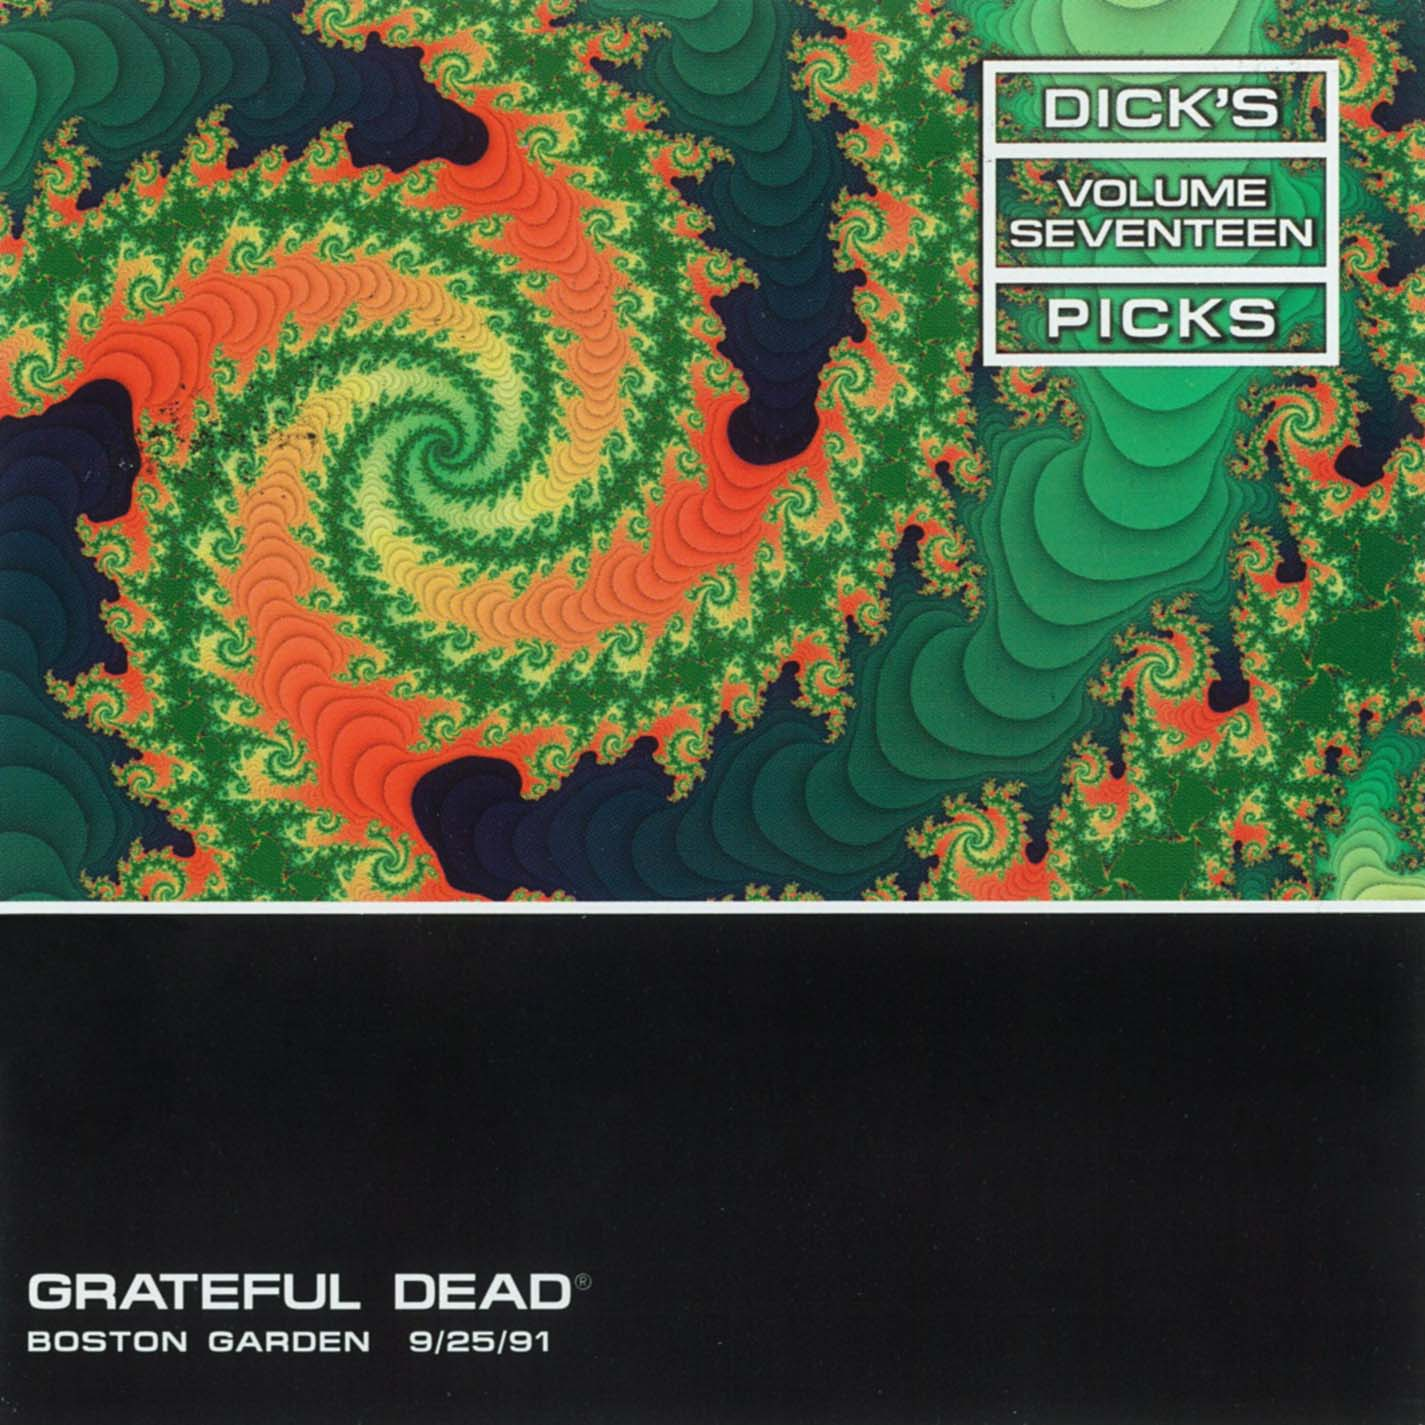 Grateful Dead Dick's Picks 17 album cover artwork